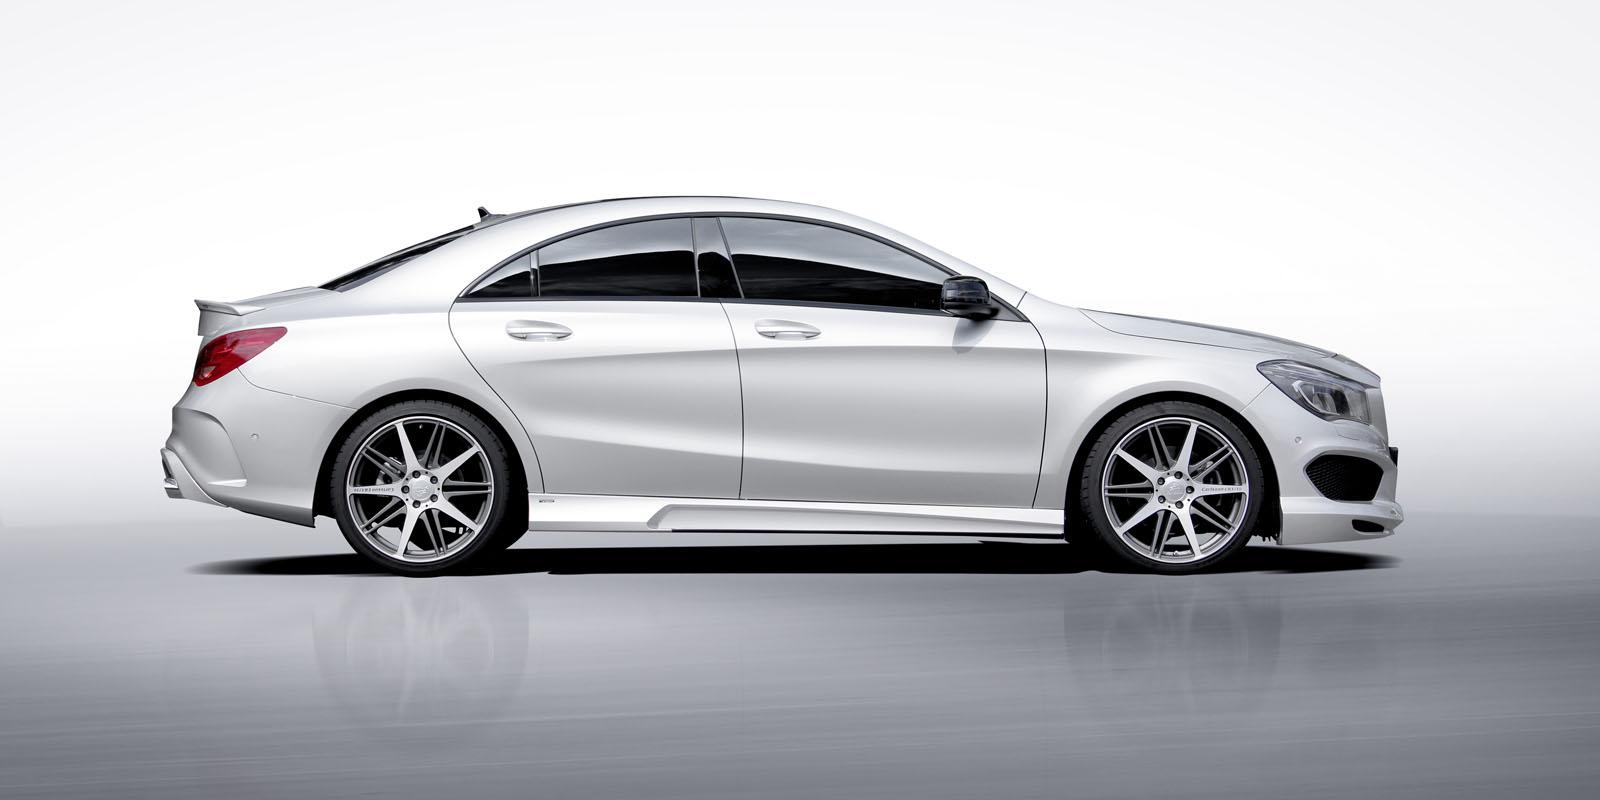 450-hp-for-the-cla-45-amg-courtesy-of-ca